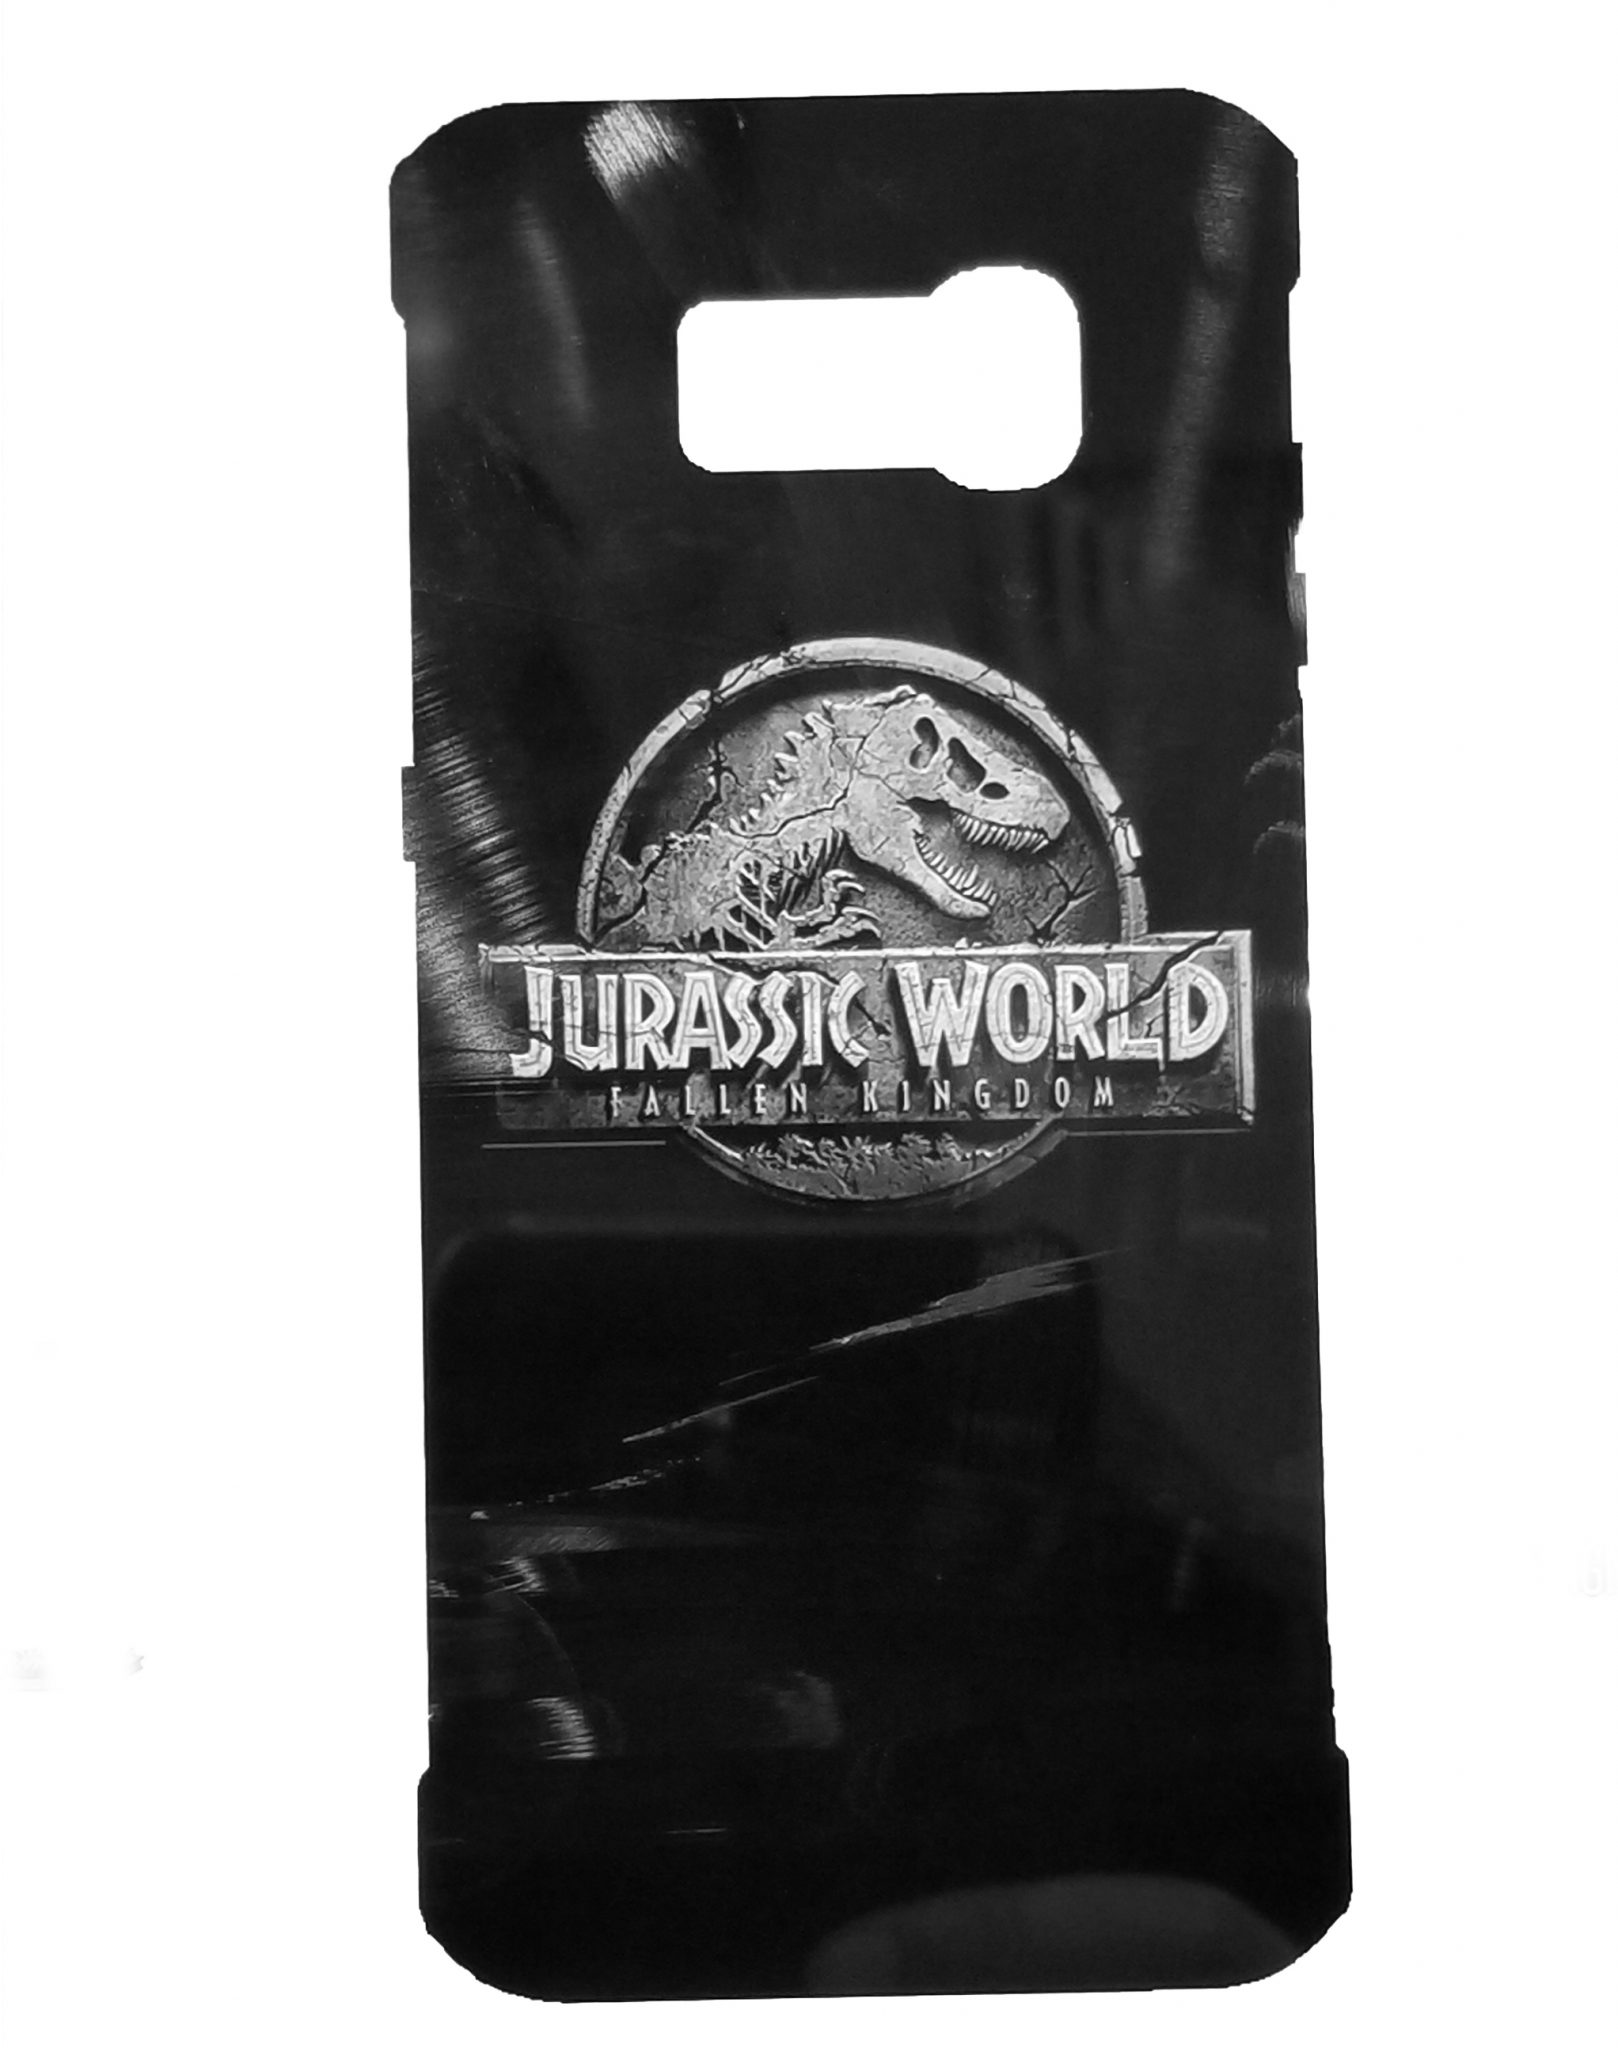 Jurassic World Jw2 Universal Studios Parks Cell Phone Cover Samsung S8 Fallen Kingdom Logo